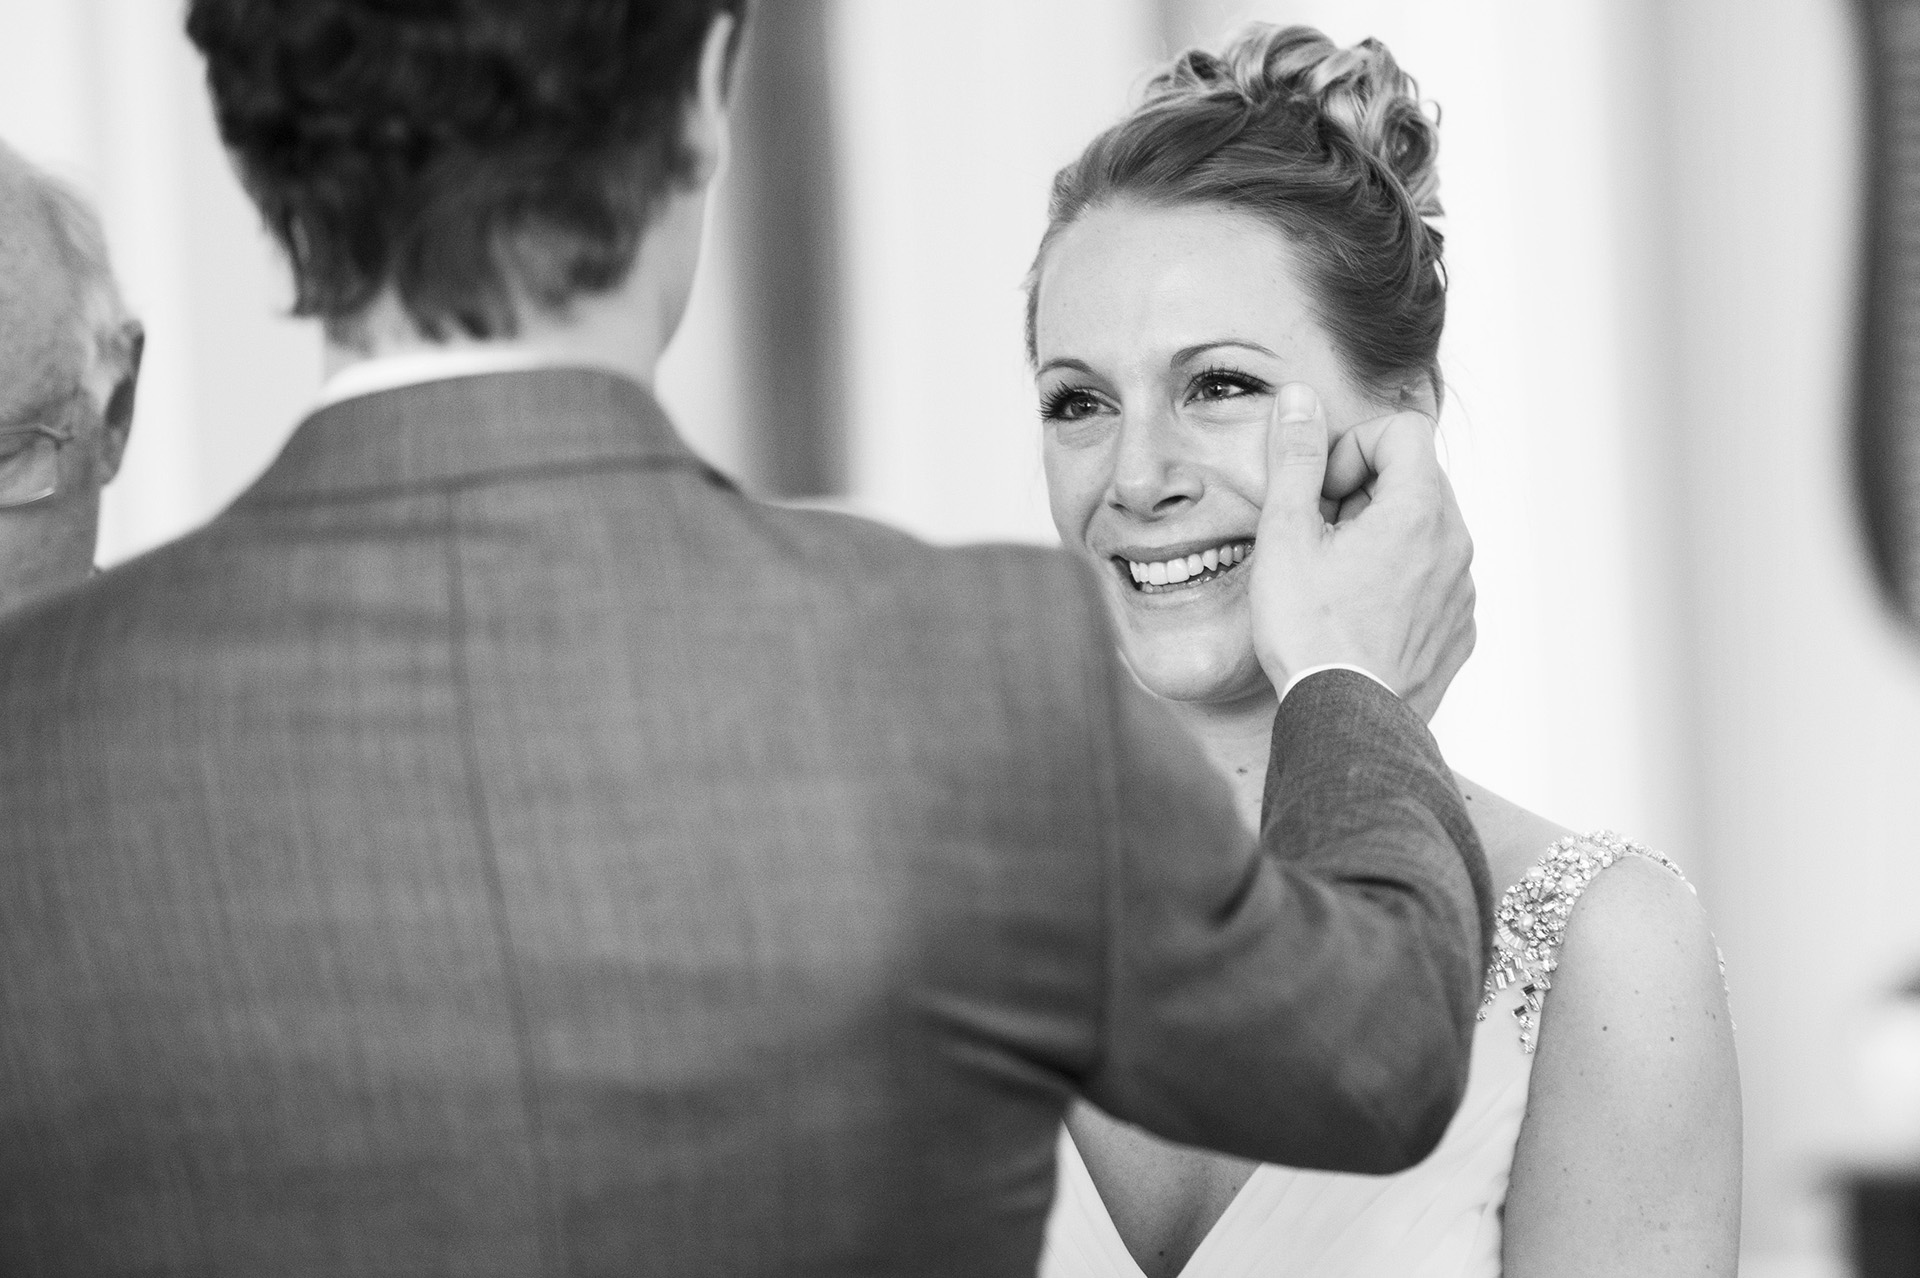 Chestnut Hill, MA Wedding Elopement Ceremony Image | their wedding ceremony begins with a tear wipe